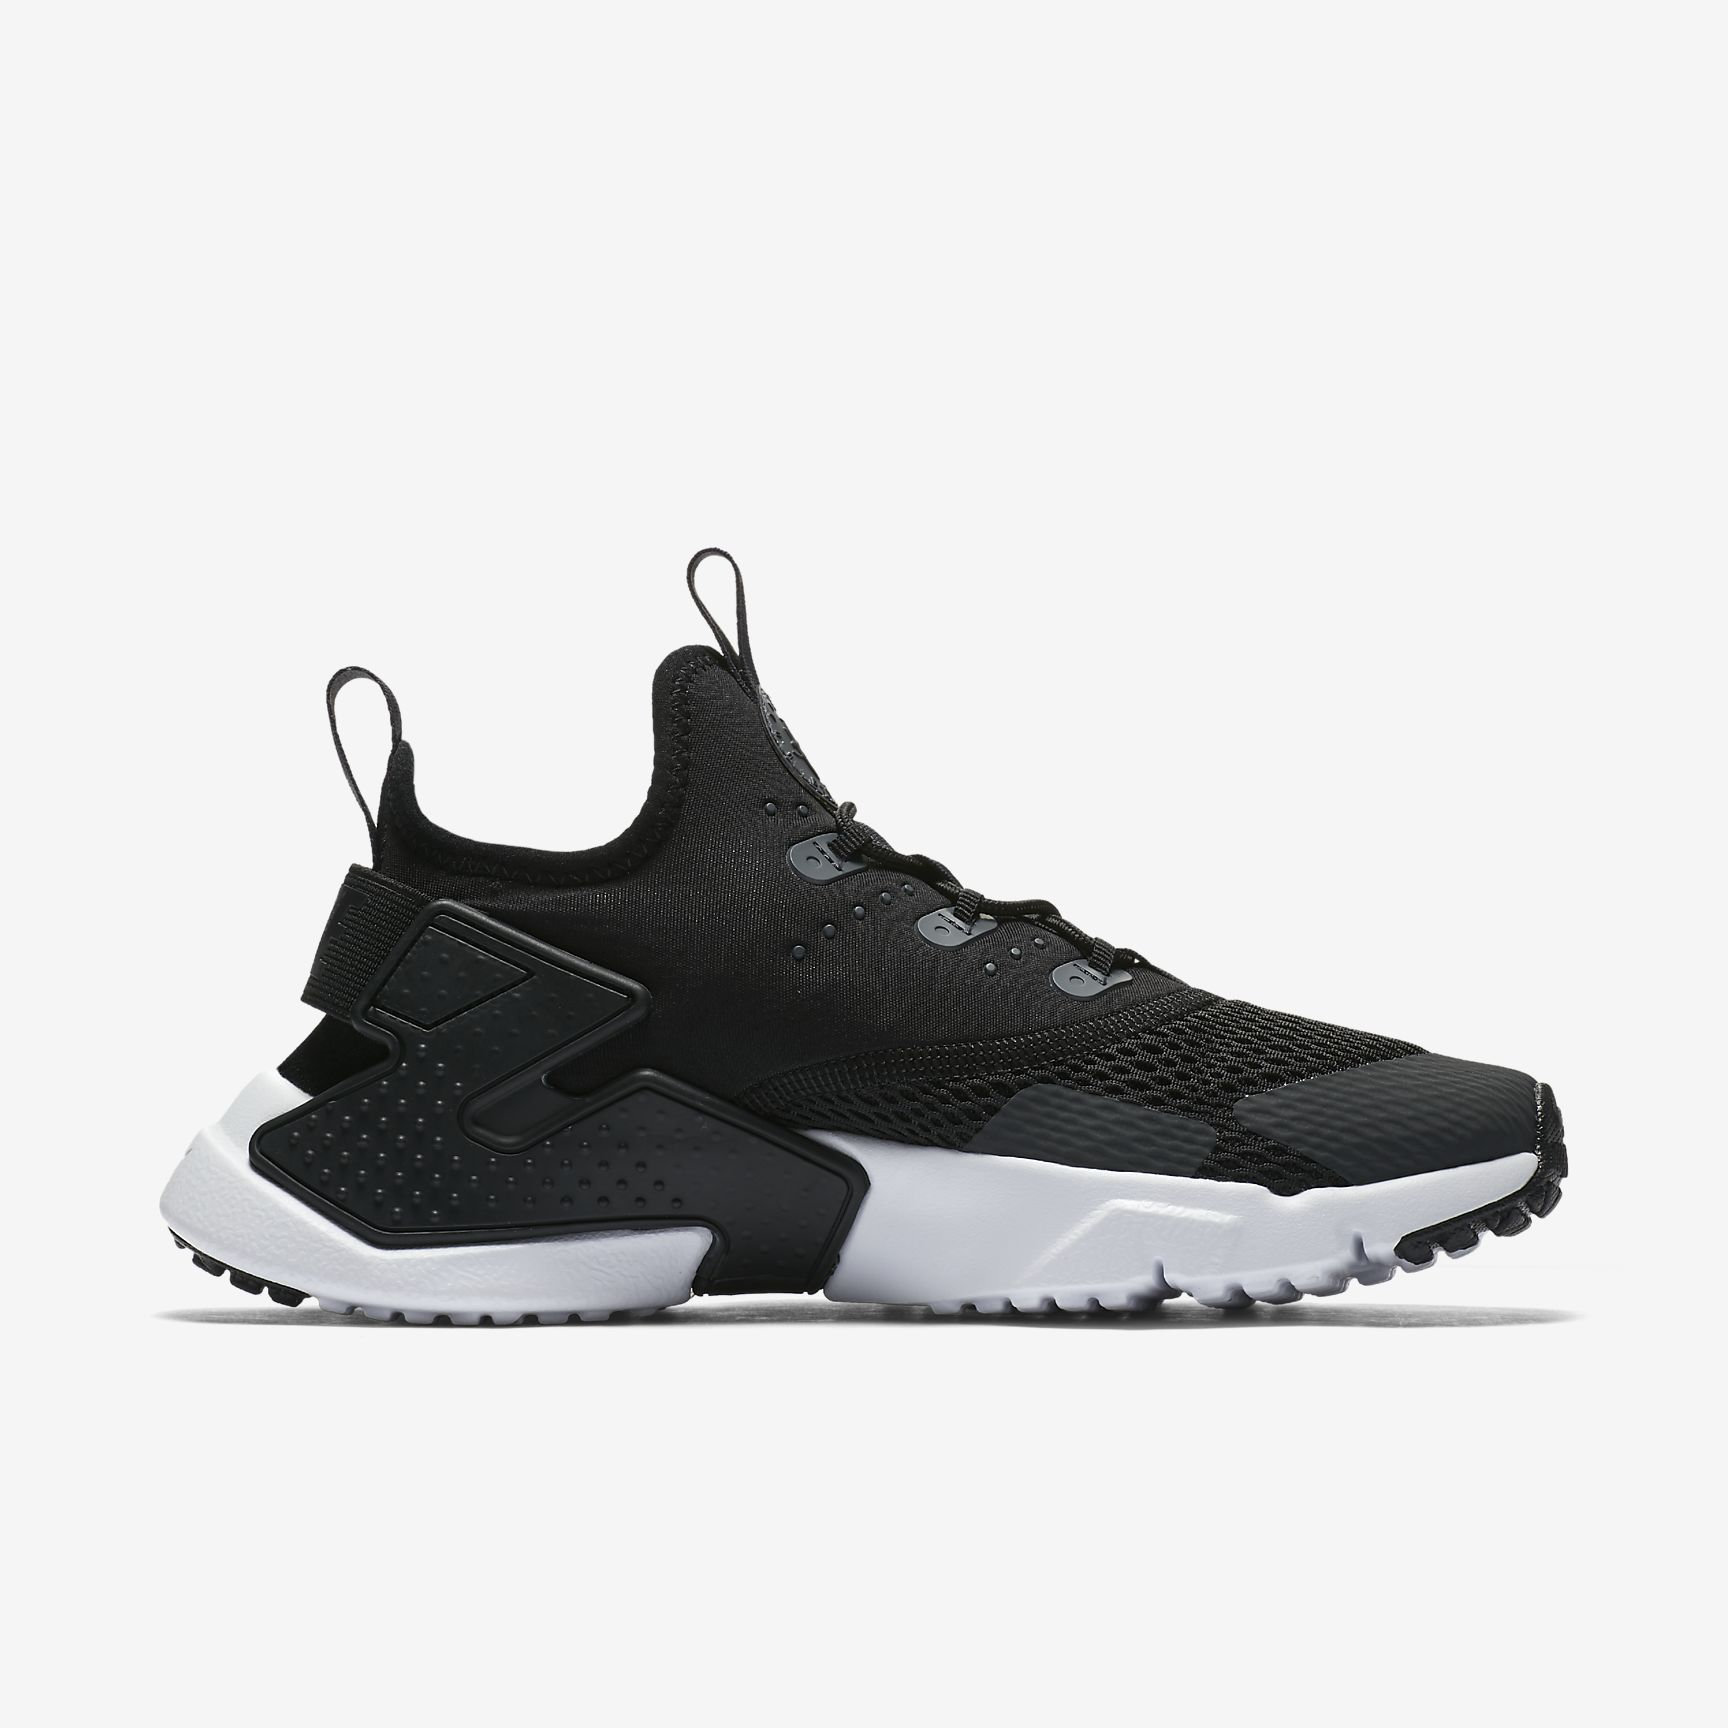 quality design 7b189 5a8a4 Chaussures Homme AIR HUARACHE Drift Noir Anthracite Blanc Anthracite